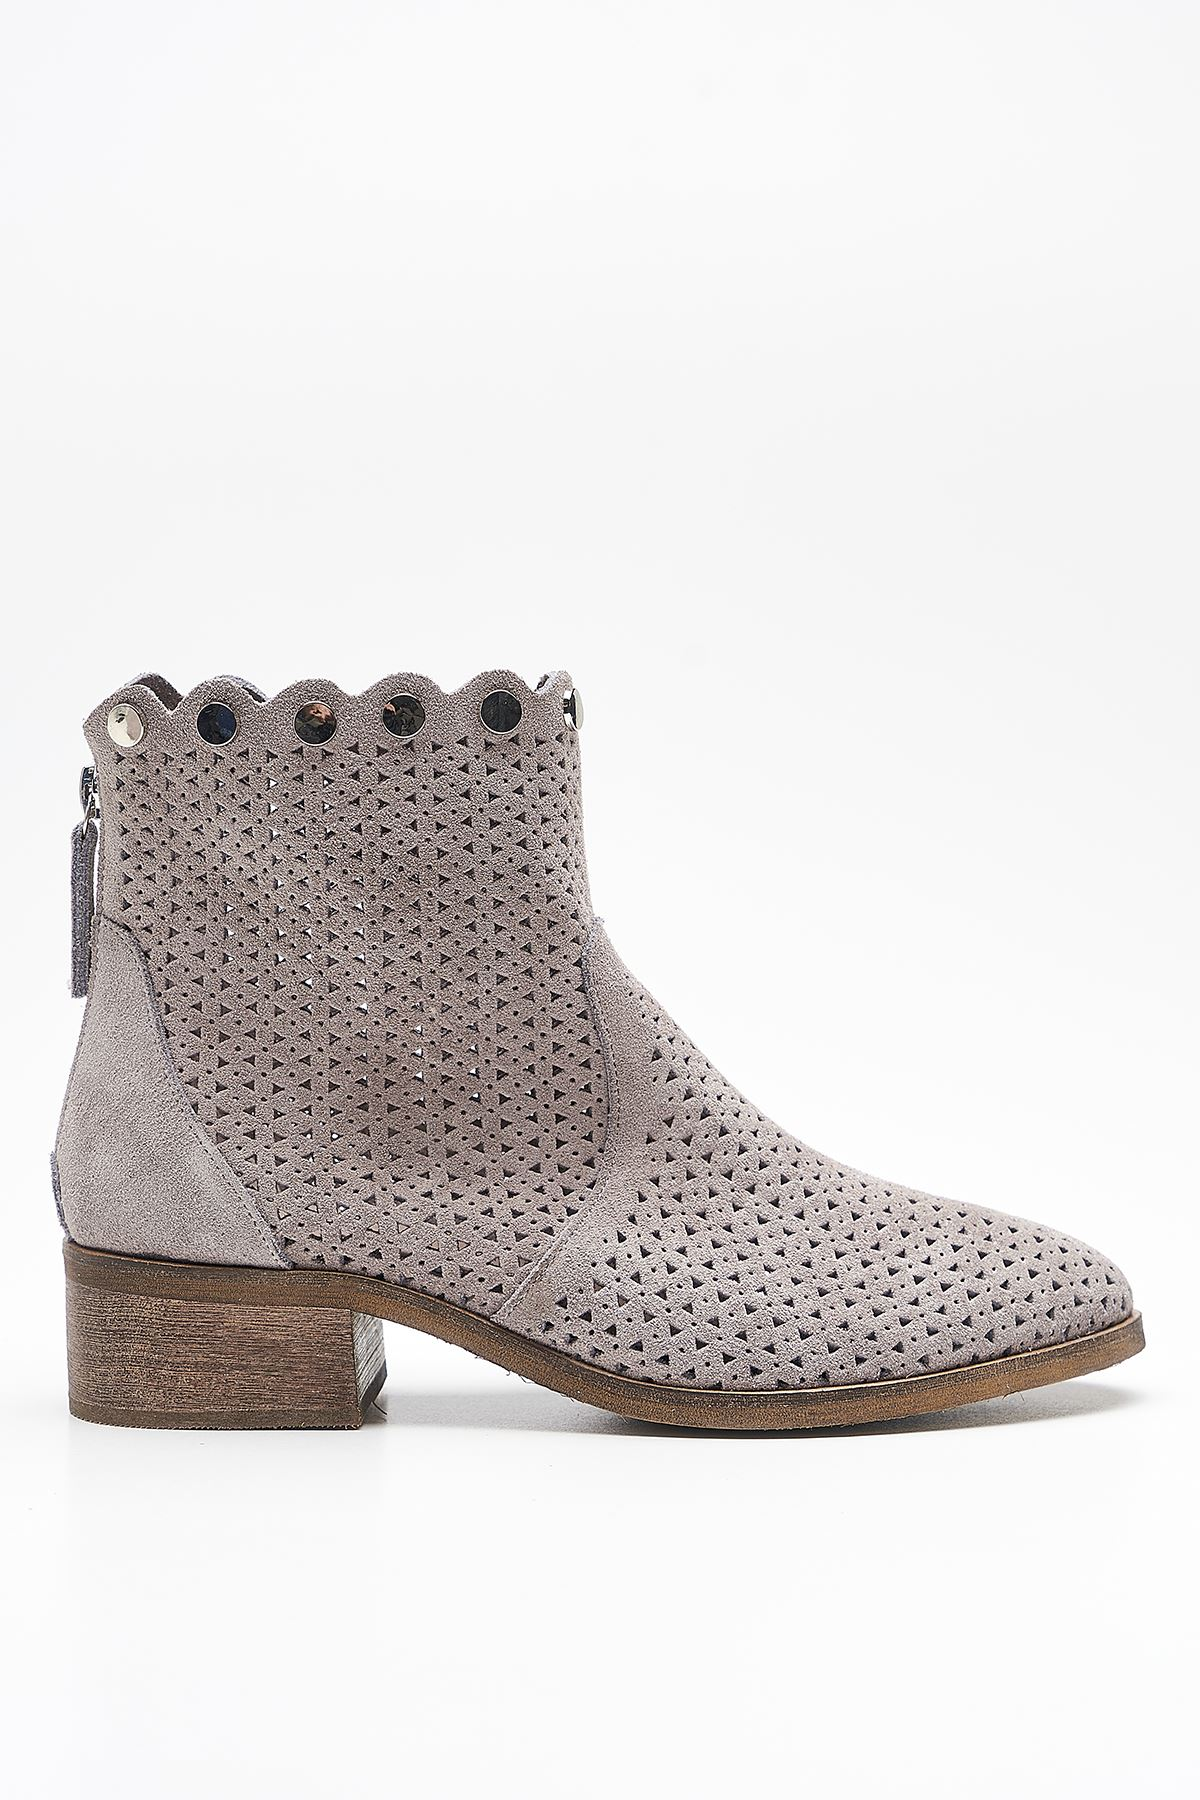 Gust Grey Genuine Leather Women's Summer Boots